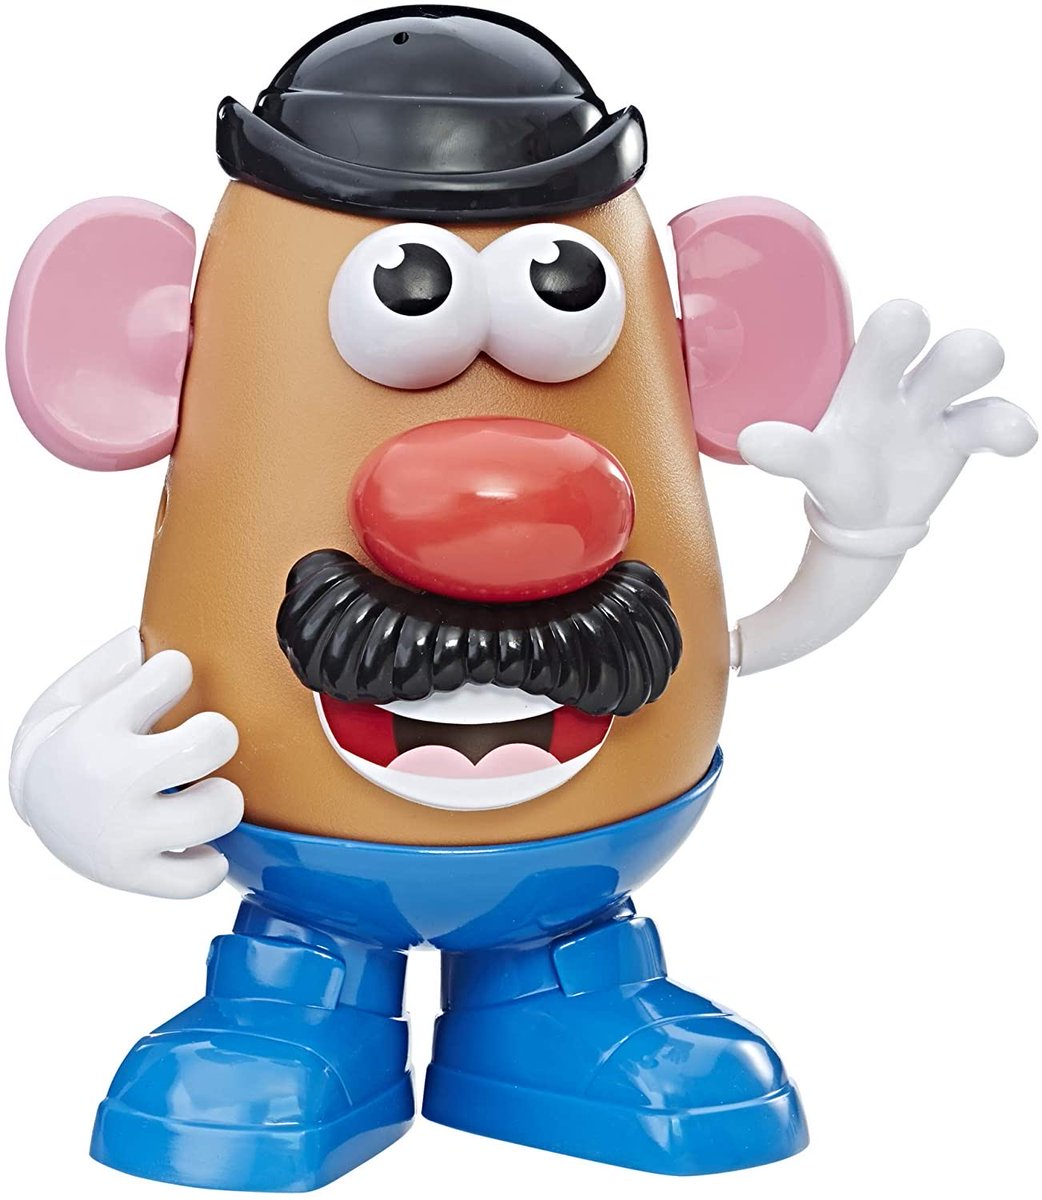 Who was actually offended by Mr Potato Head being male? I want names. These woke imbeciles are destroying the world. https://t.co/CwsaX5D2Ue